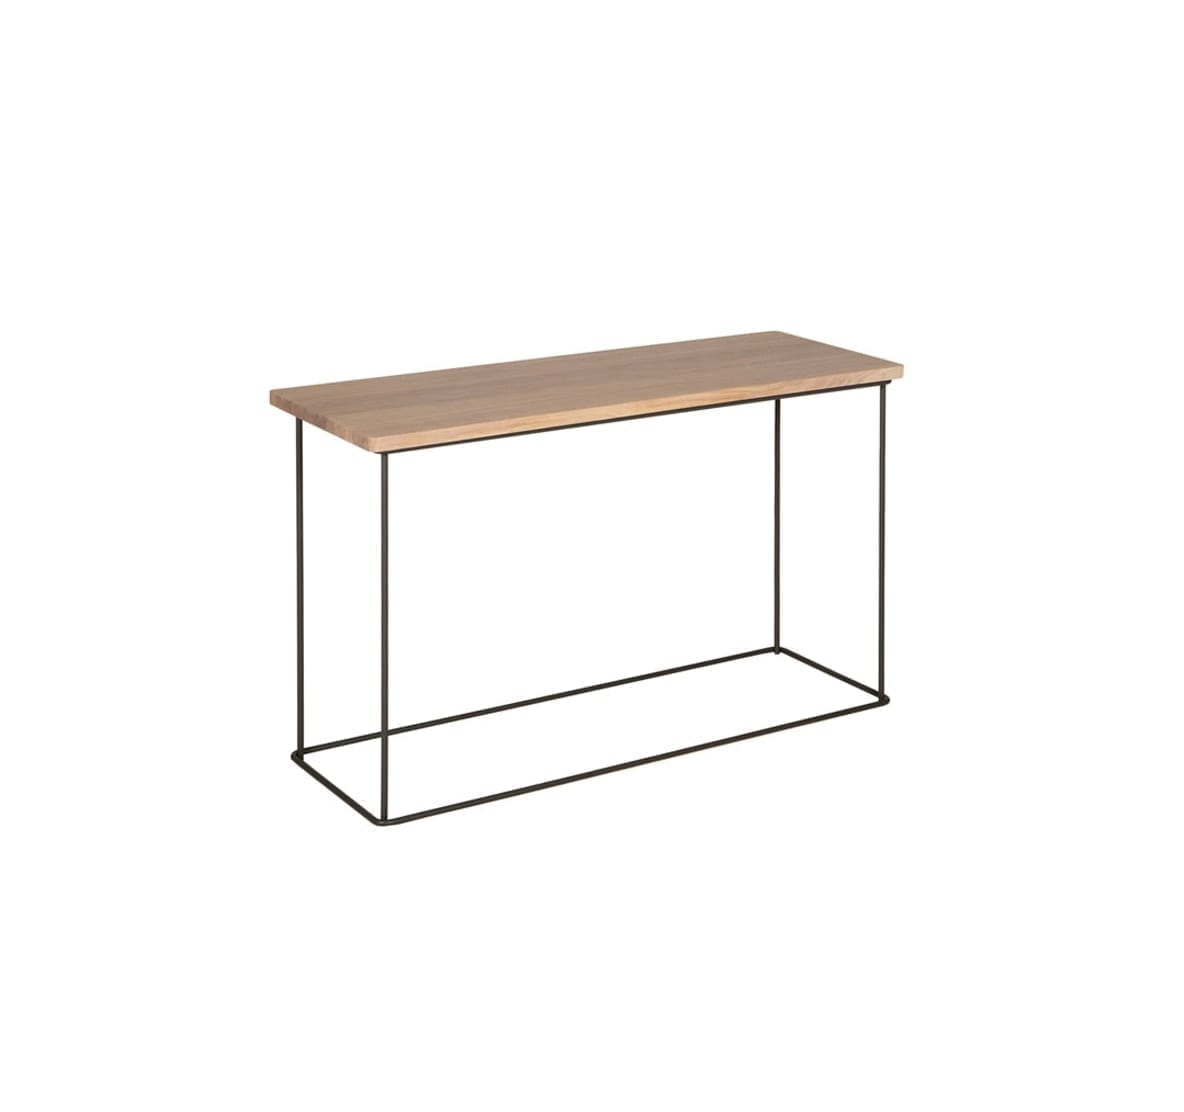 sits_classic_coffee_console_1_01